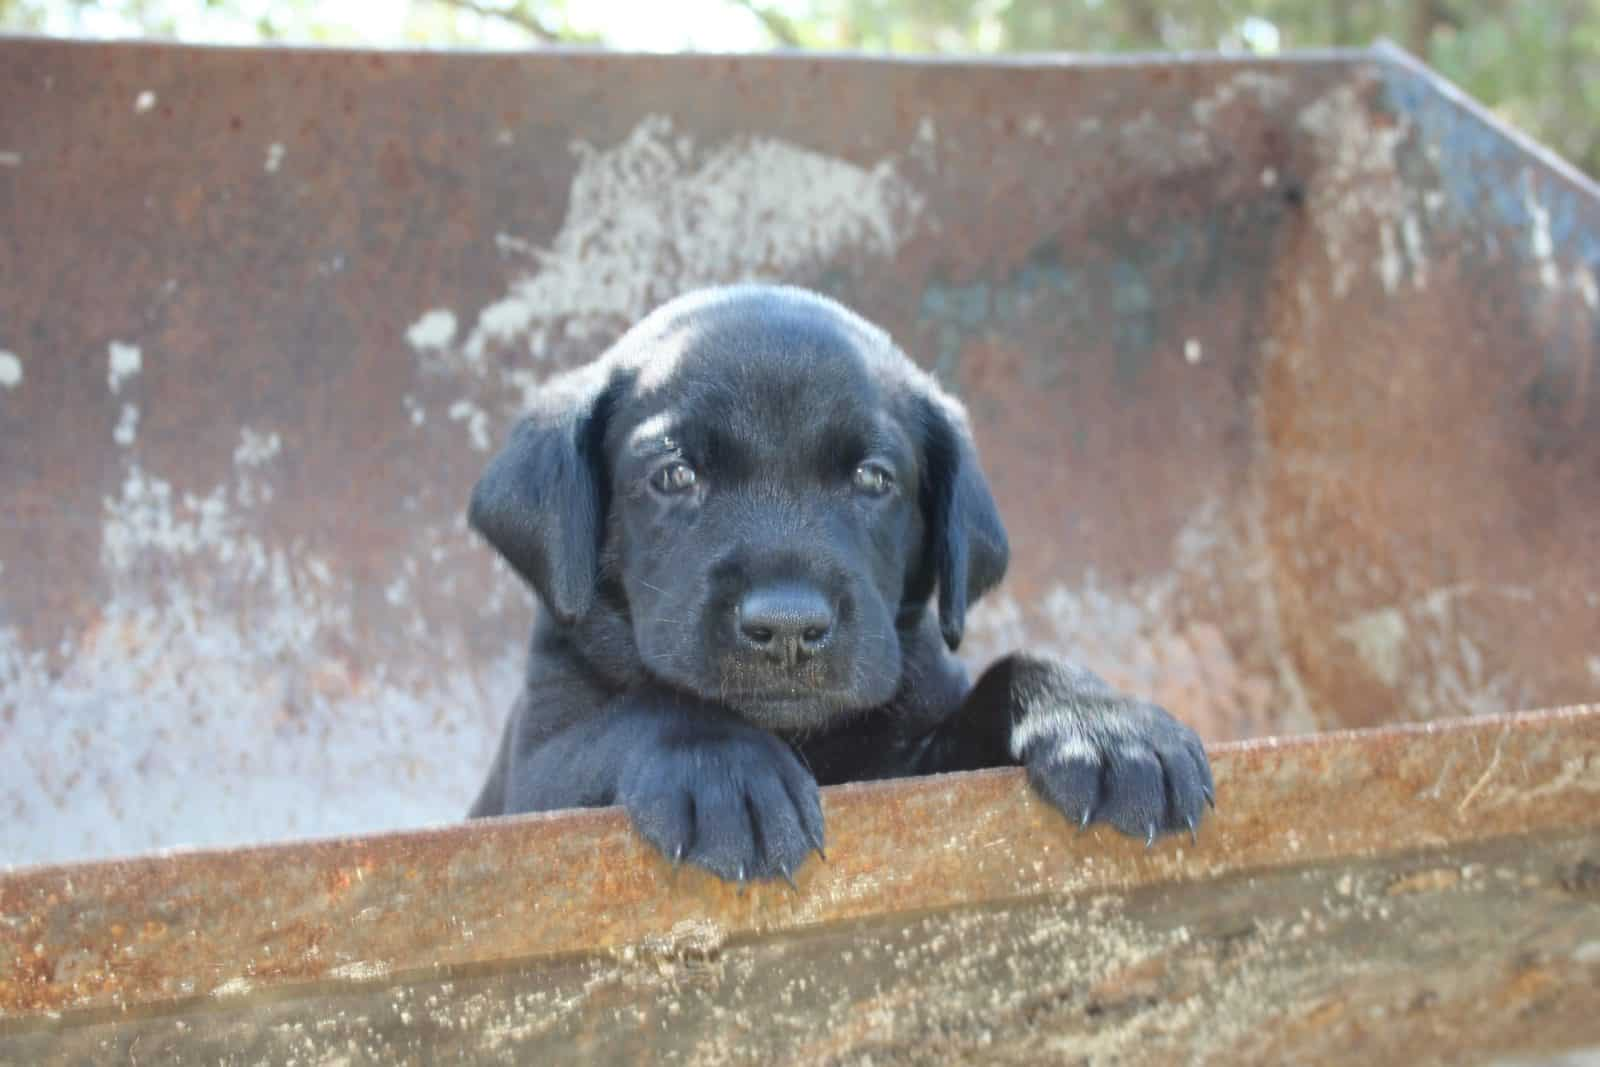 Labrador puppy in tractor bucket with grey collar from California Labrador Retriever Breeder